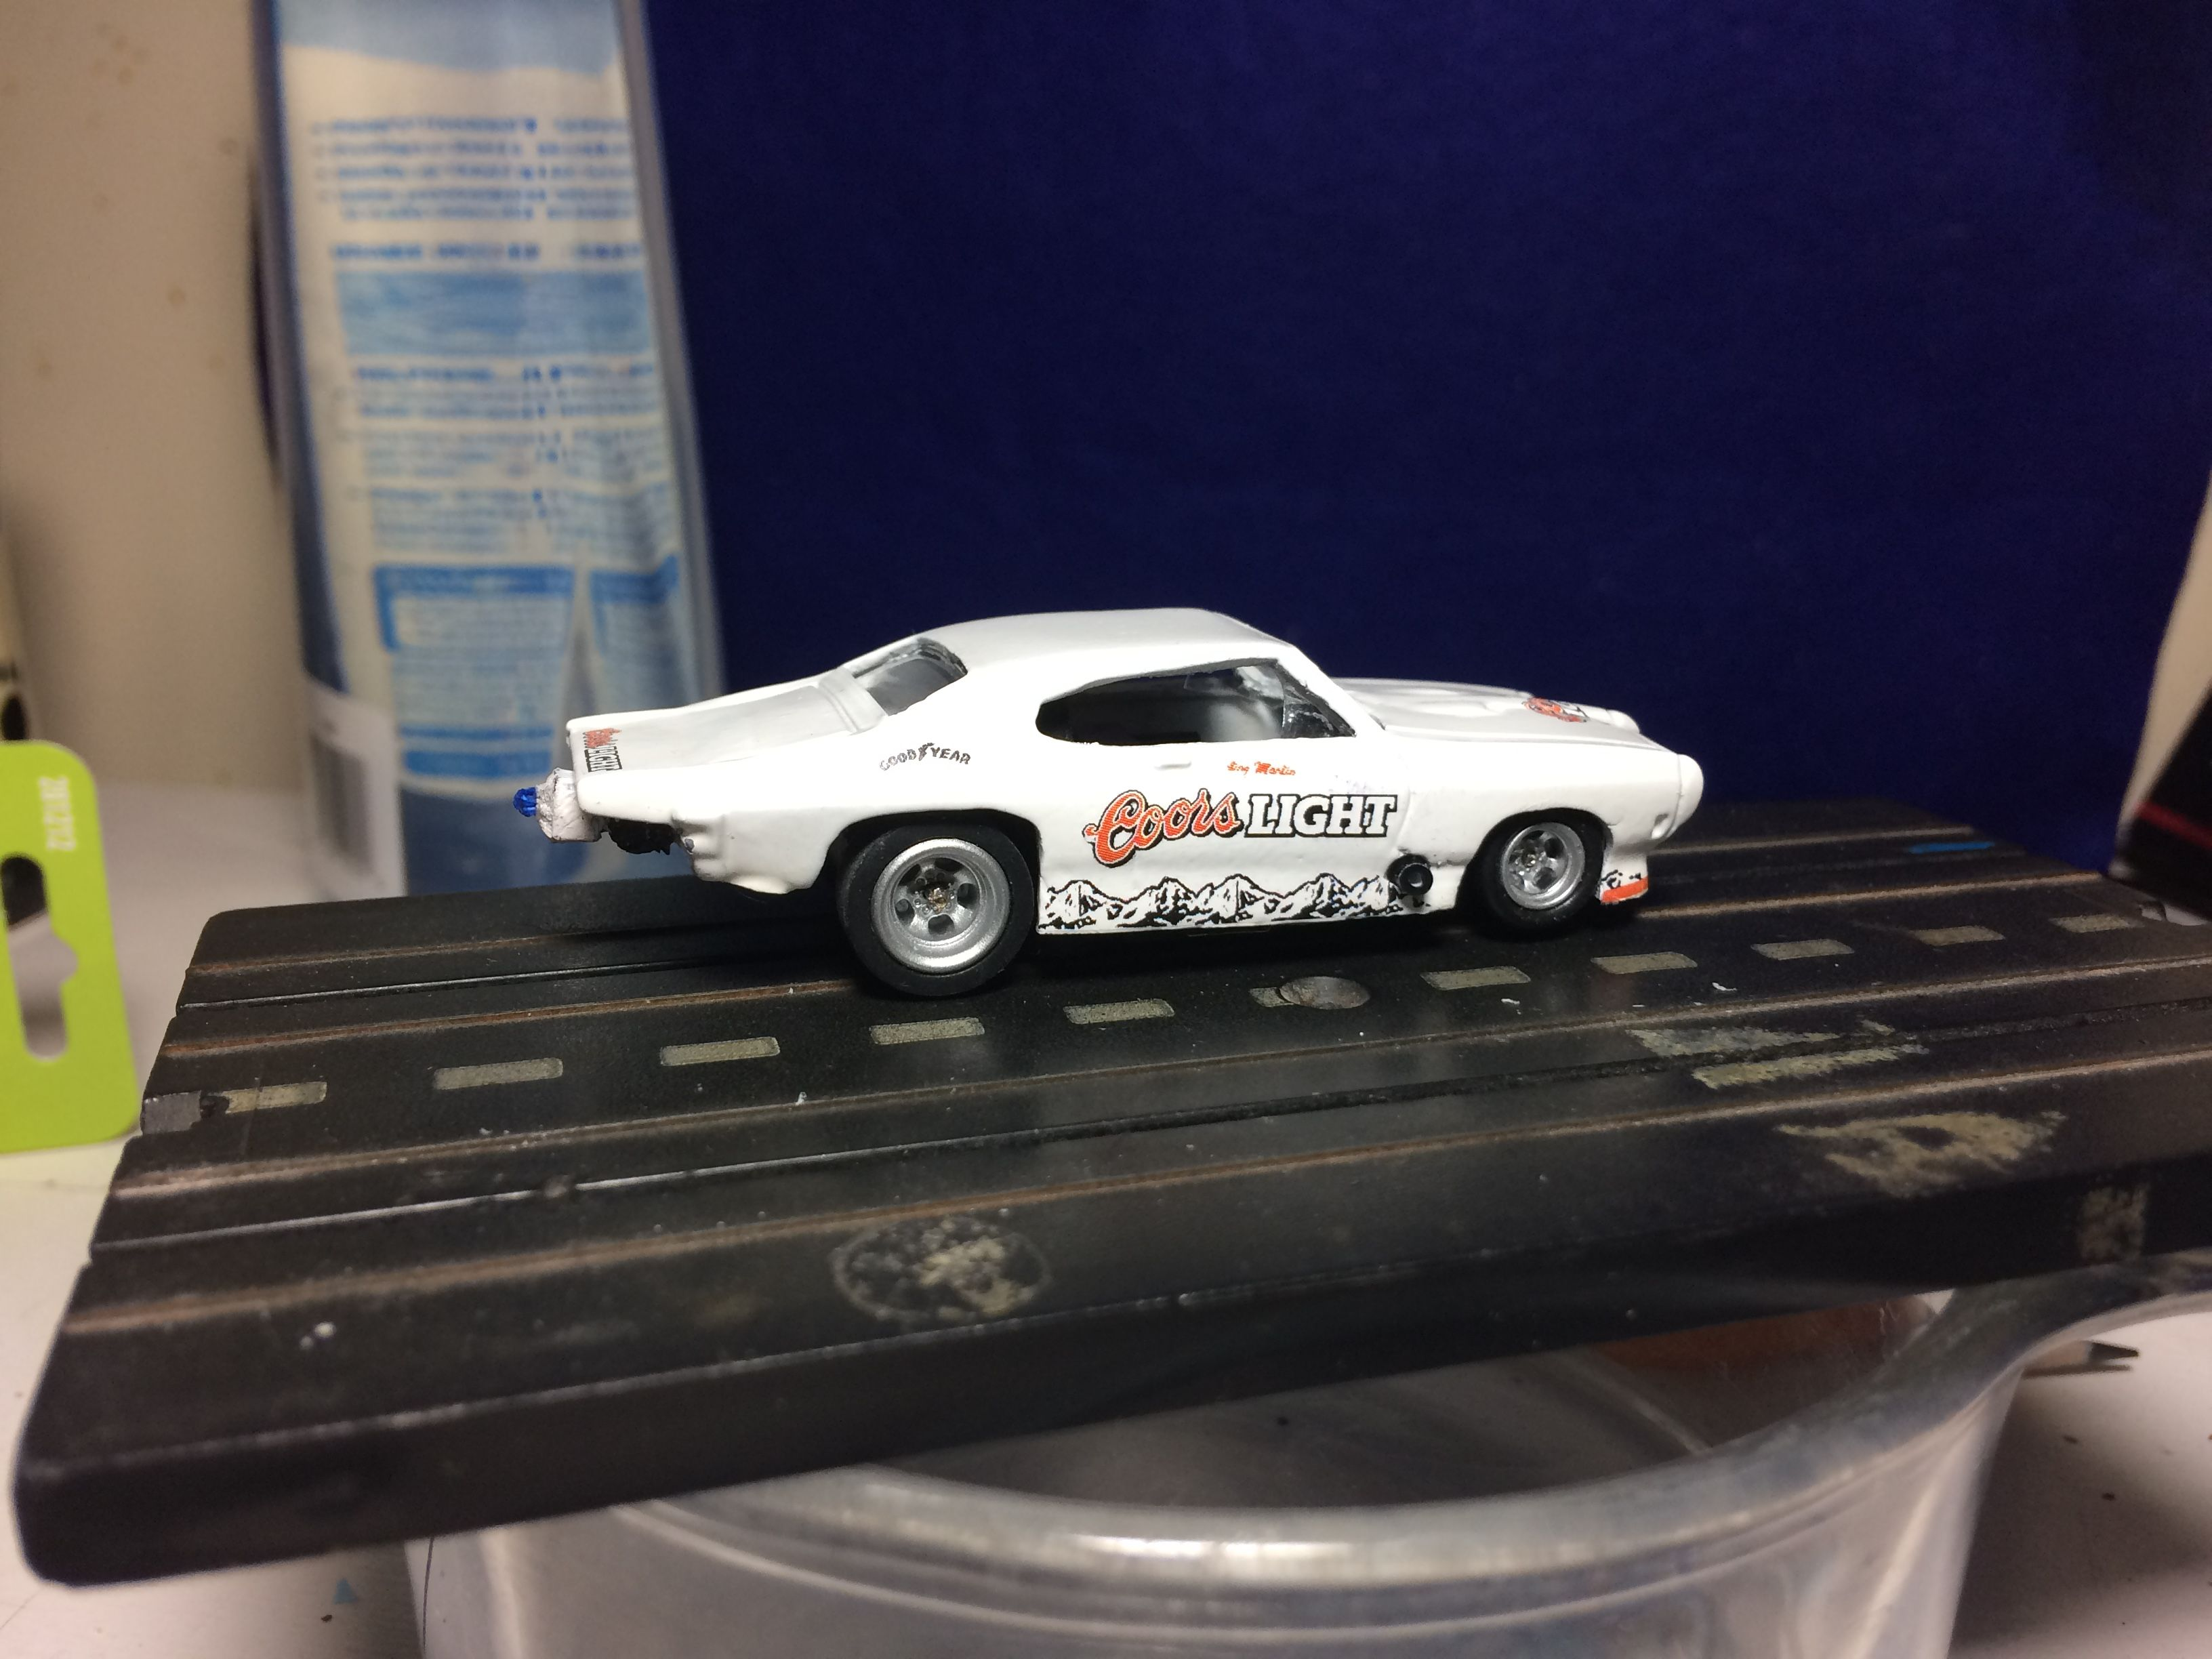 Check out Drag Racers Alley ho slot cars on Facebook, & for